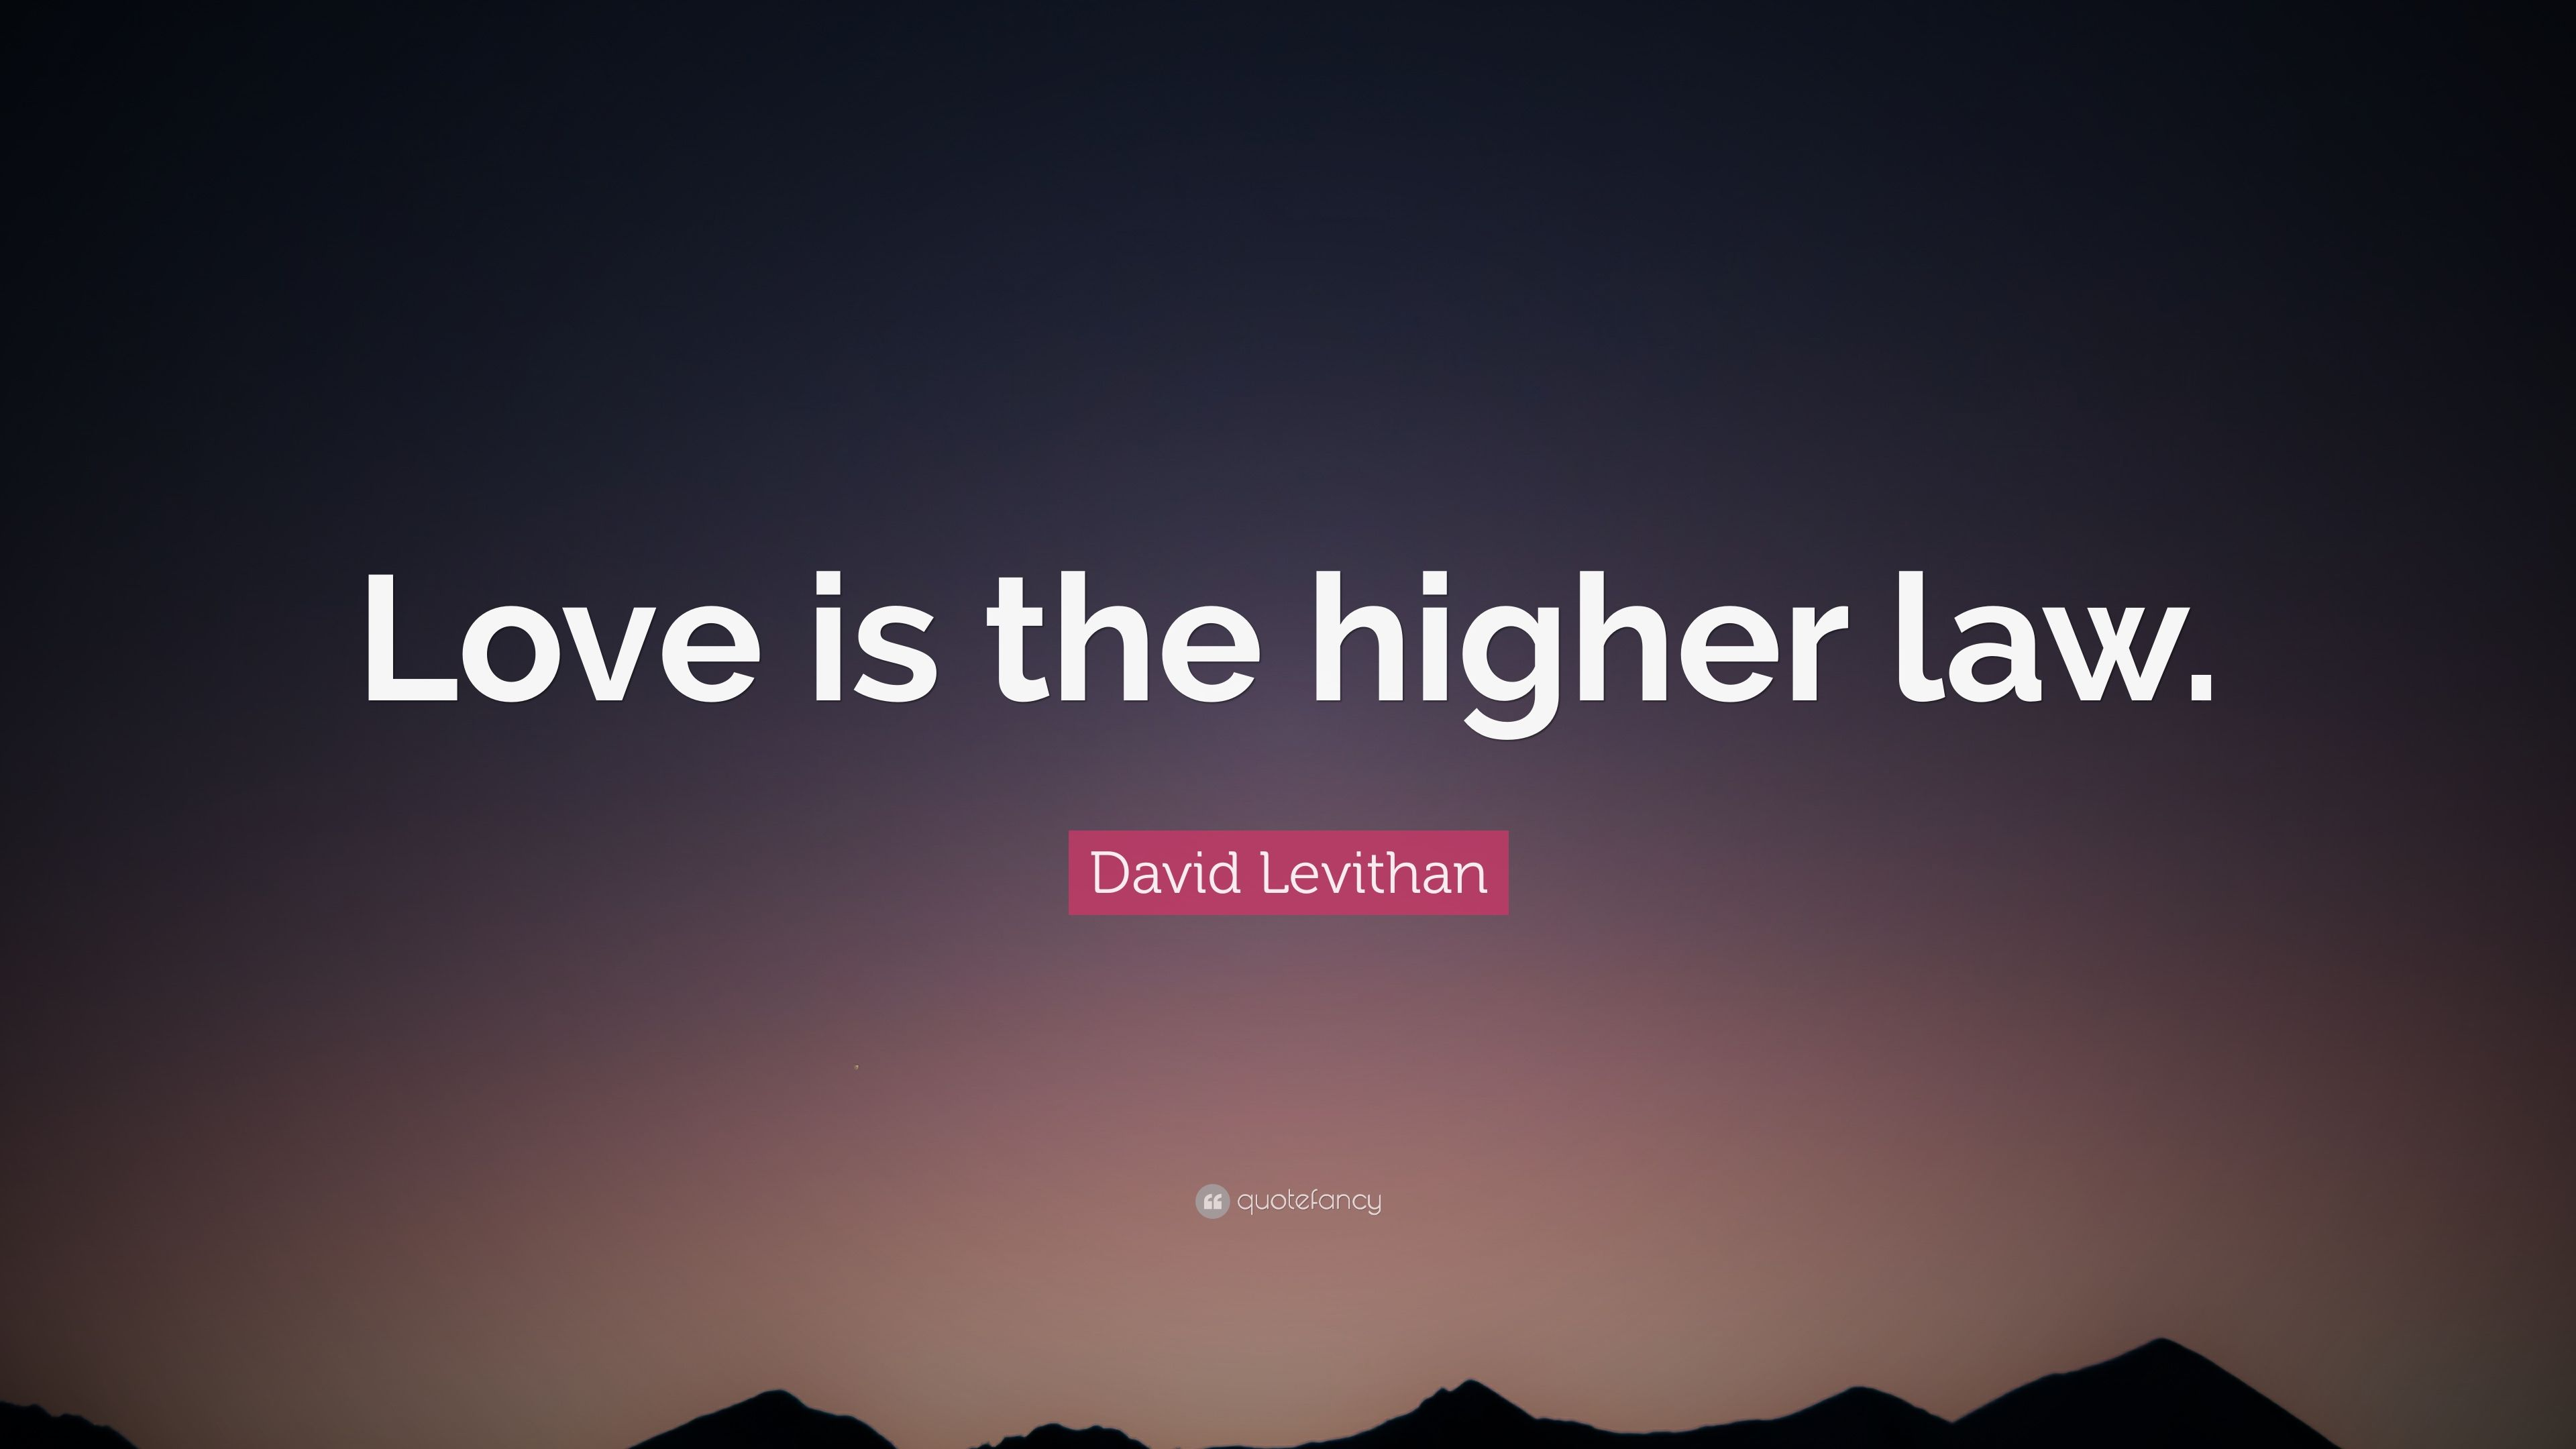 Law pdf is the higher love